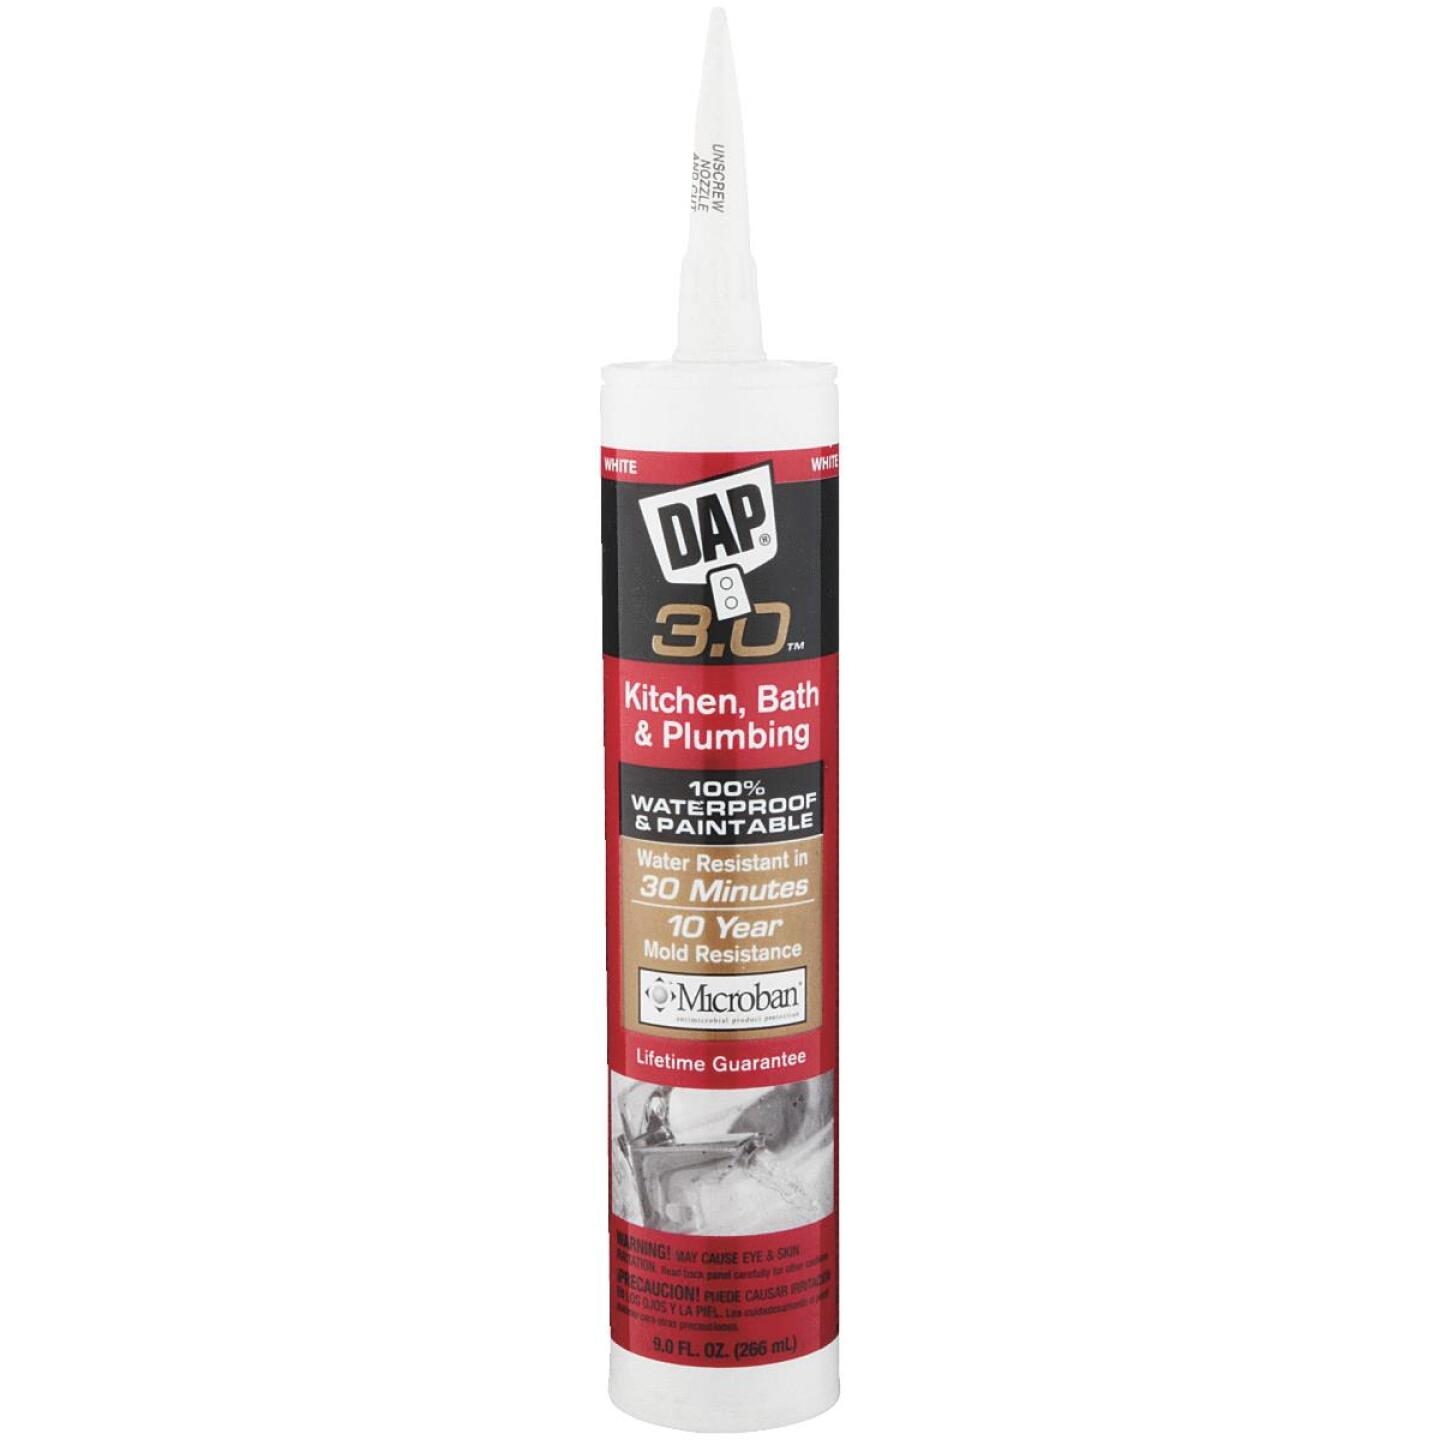 DAP 3.0 9 Oz. Gloss White Kitchen, Bath & Plumbing Caulk Image 1